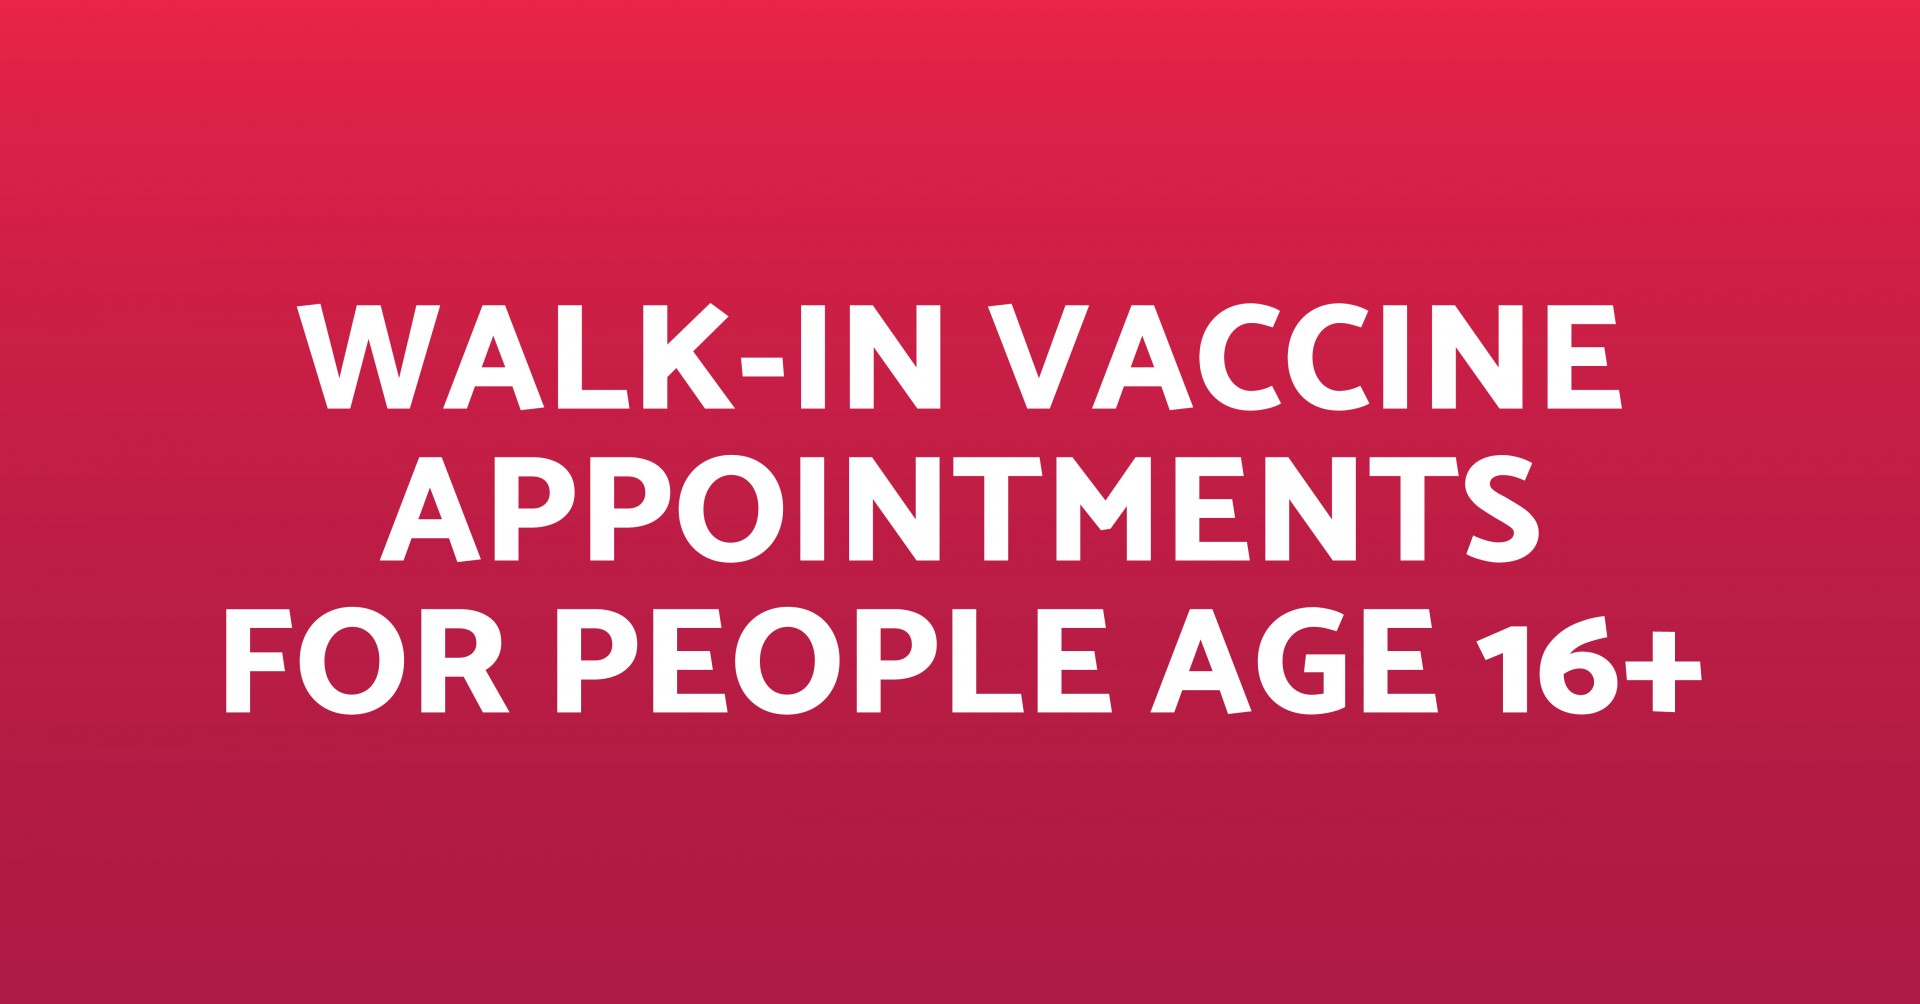 Walk-In Vaccine Appointments for People Age 16+_1200x628